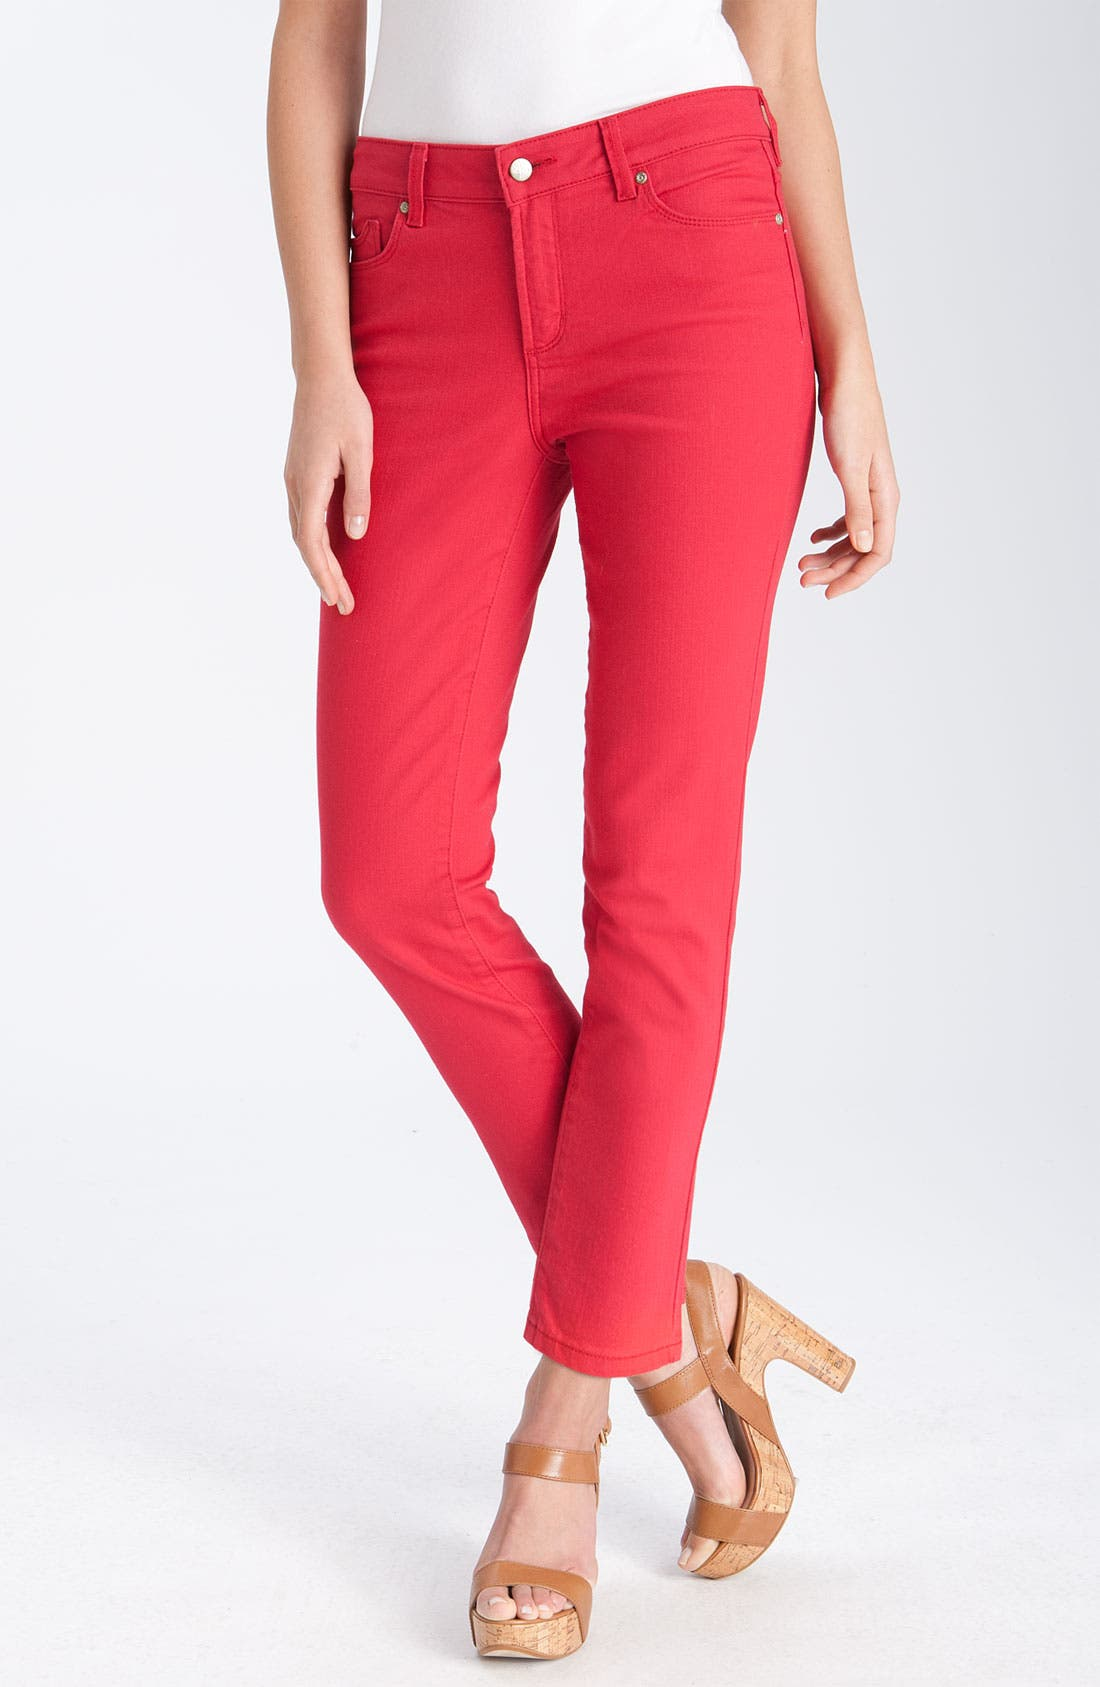 Alternate Image 1 Selected - NYDJ 'Alisha' Skinny Stretch Jeans (Petite)